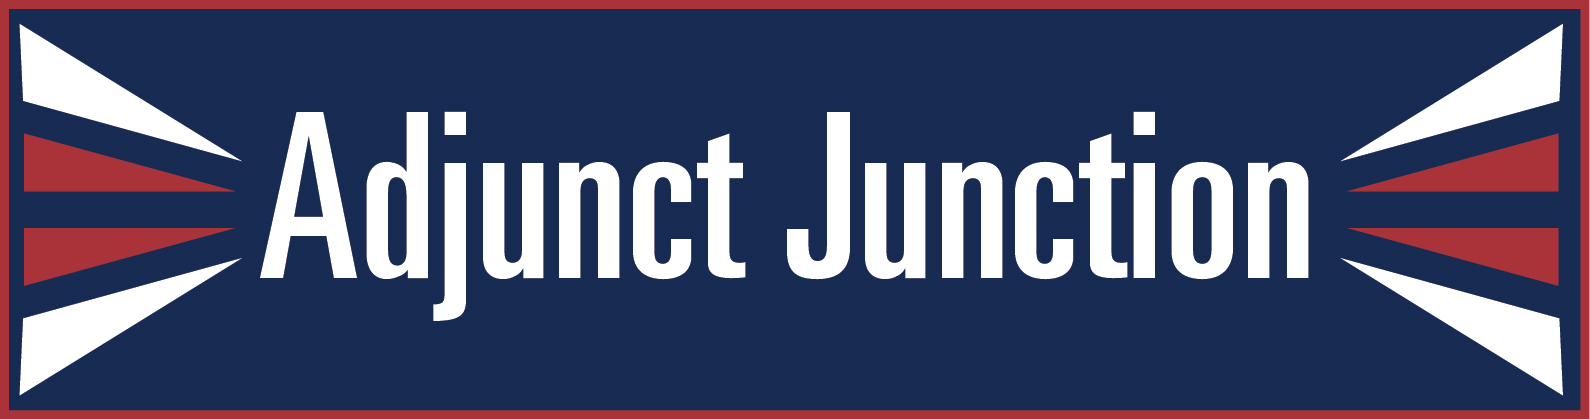 Adjunct Junction Page Banner